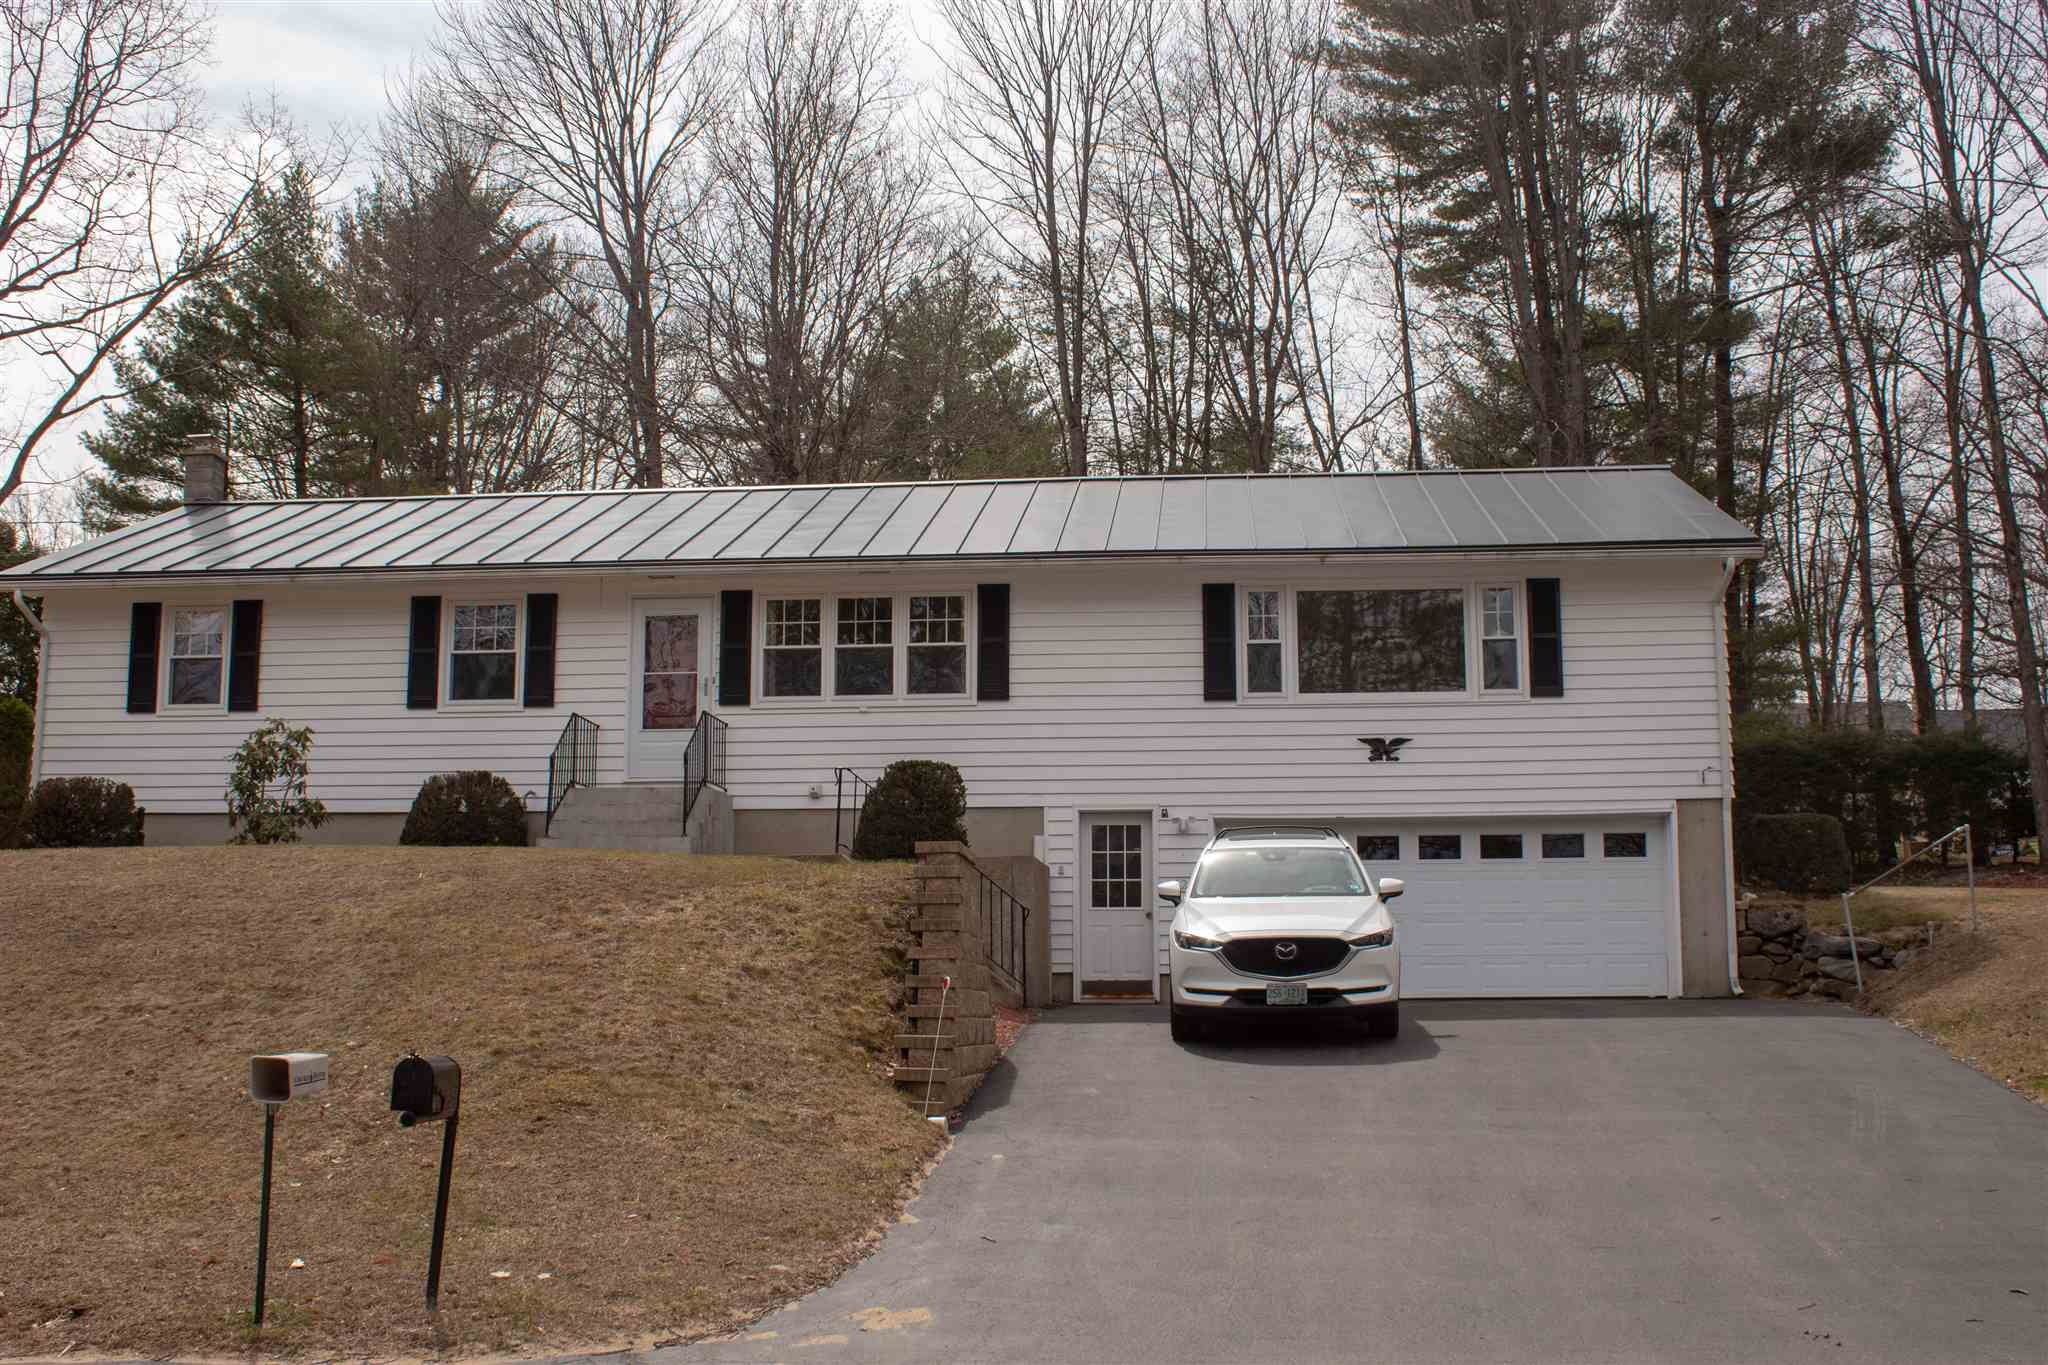 Photo of 121 Terrace Road Franklin NH 03235